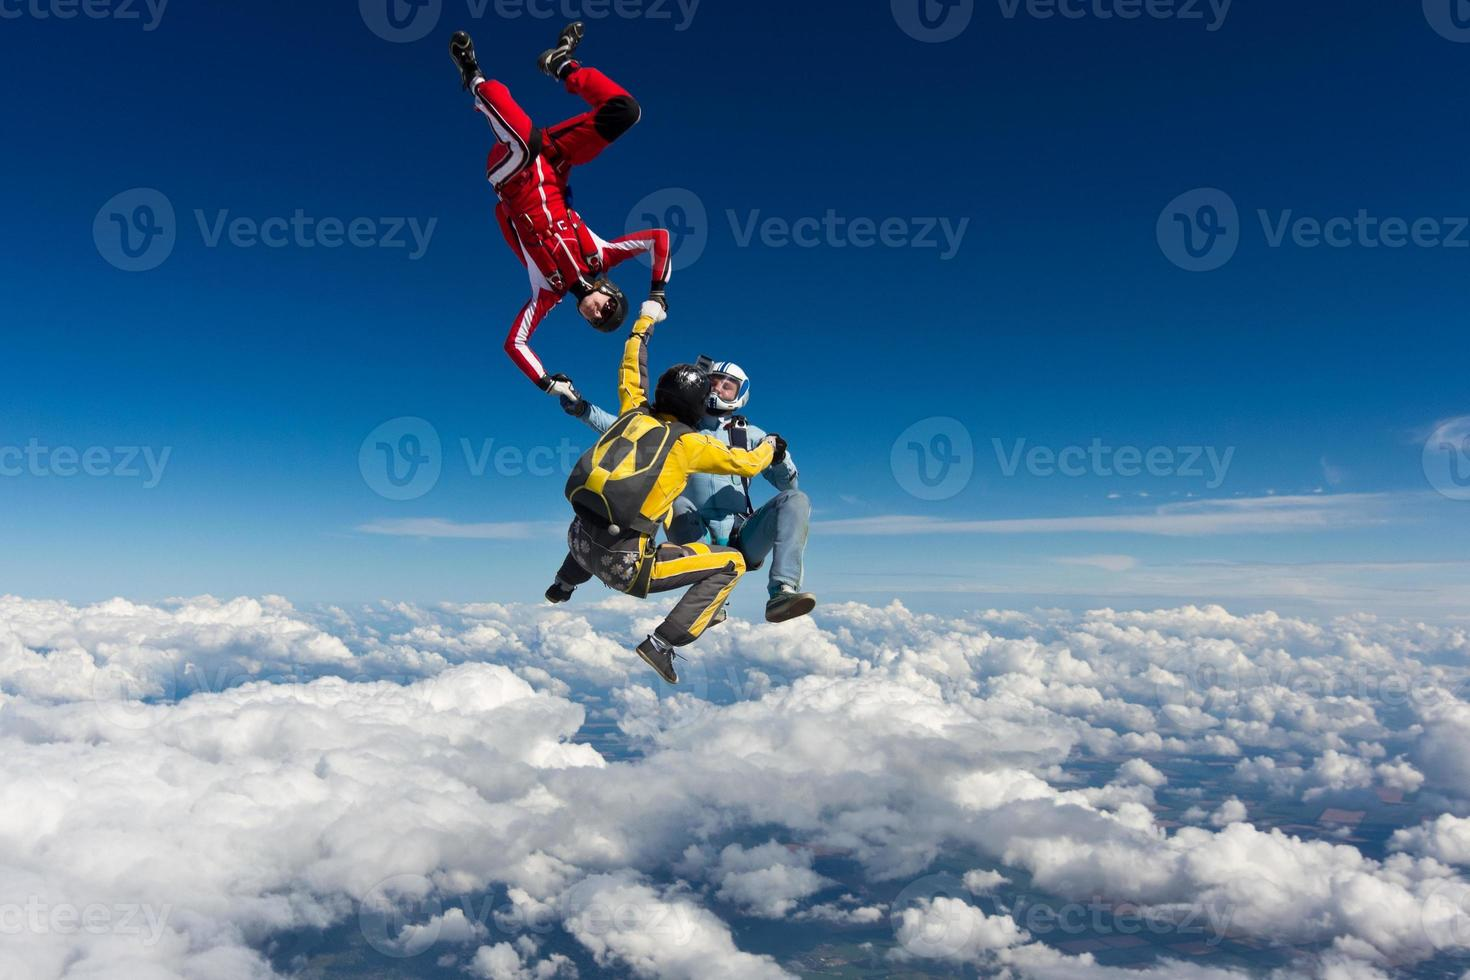 Skydiving photo. photo